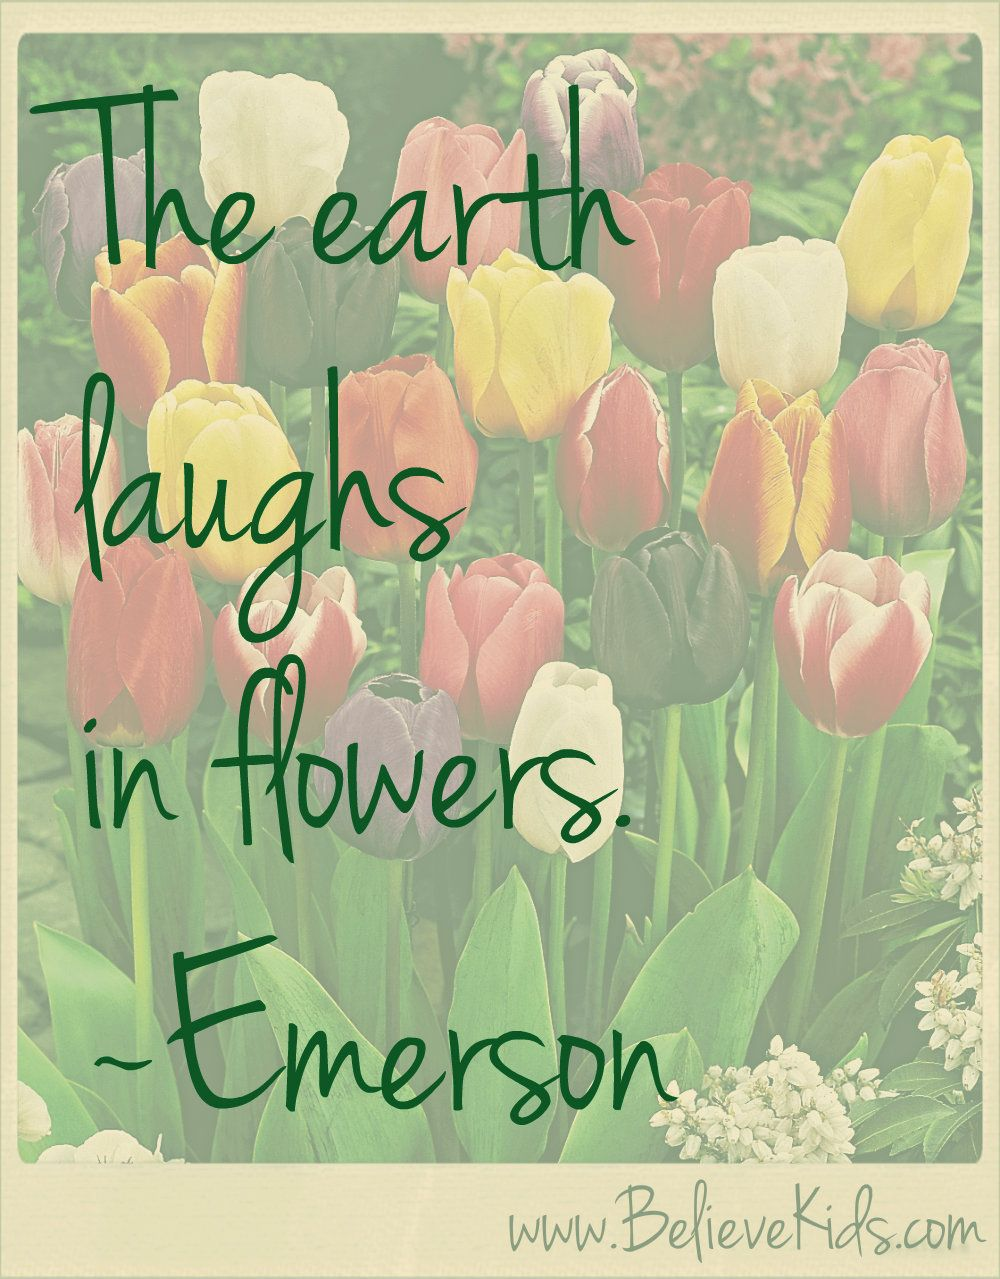 Wonderful ~Emerson Perfect Spring Quote! Bring The Flowers.